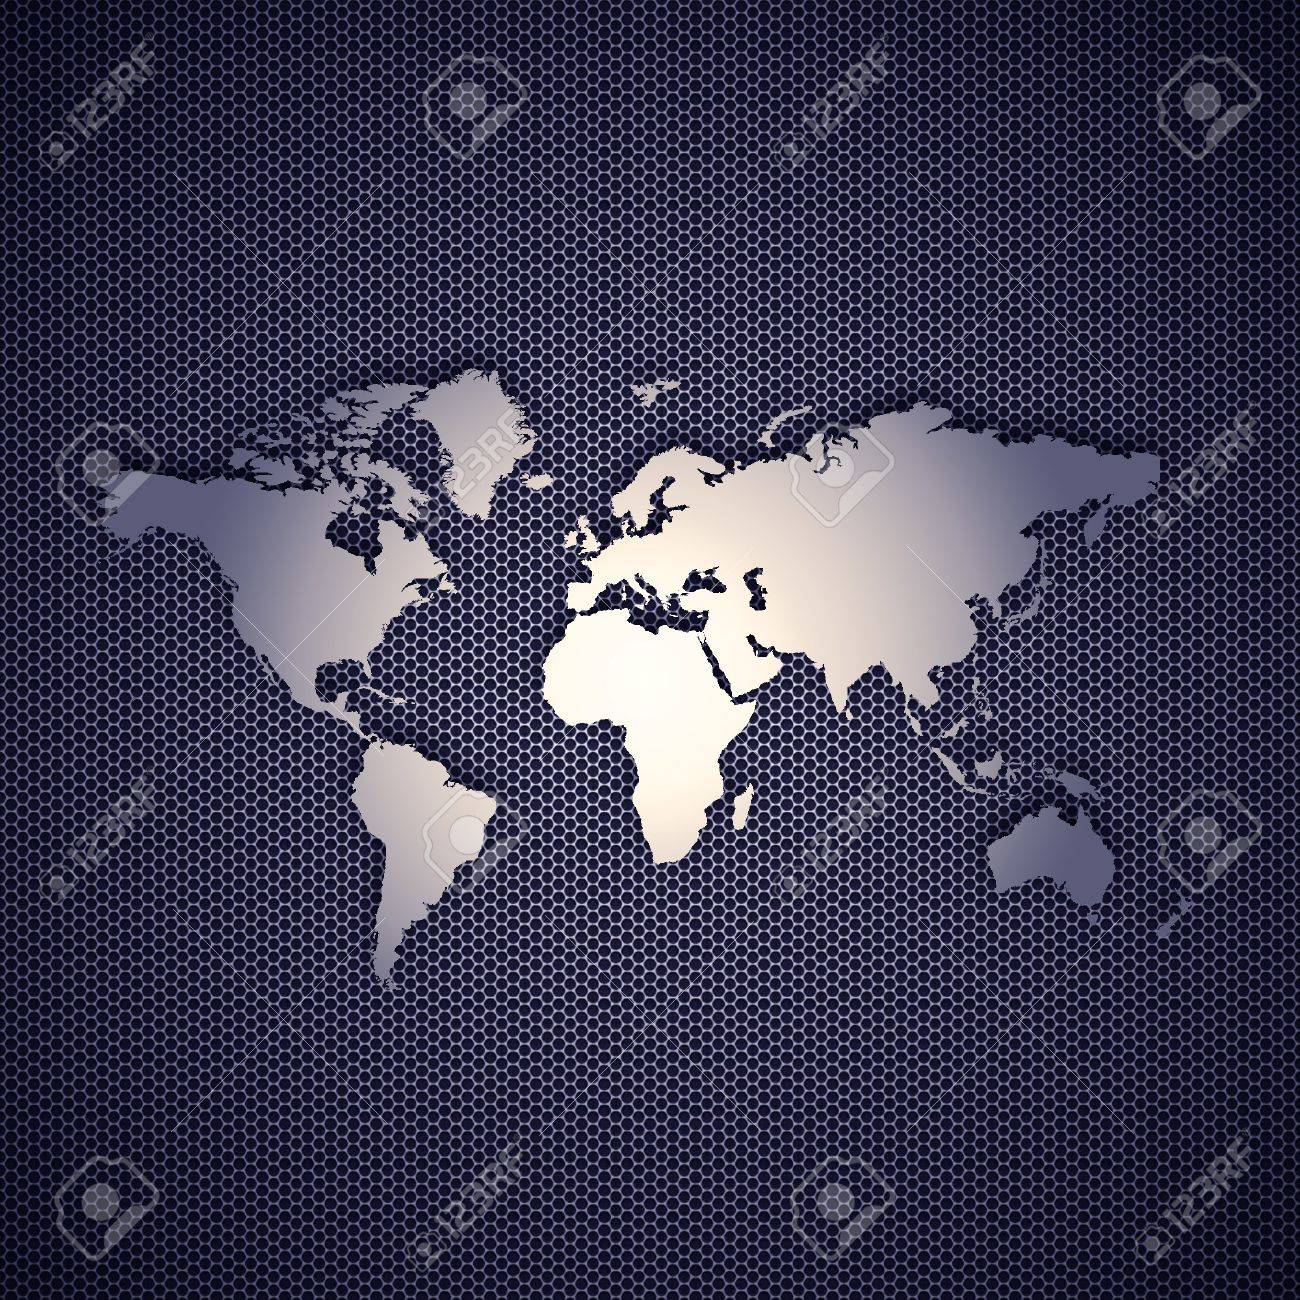 World map with metal background high resolution image stock photo stock photo world map with metal background high resolution image gumiabroncs Gallery